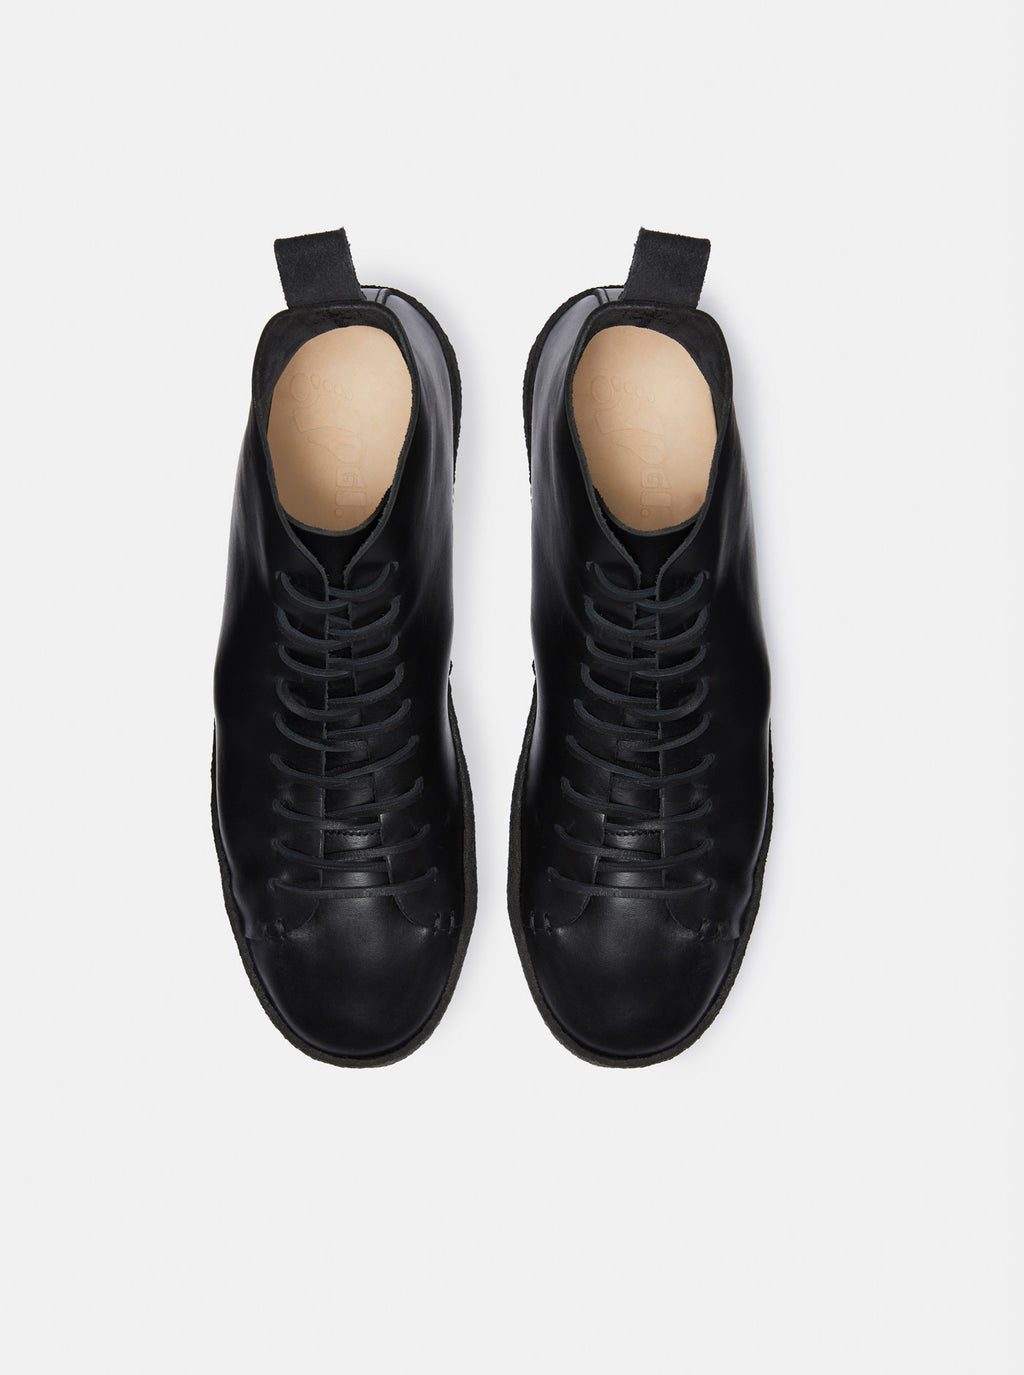 Winstone Crepe Black Leather